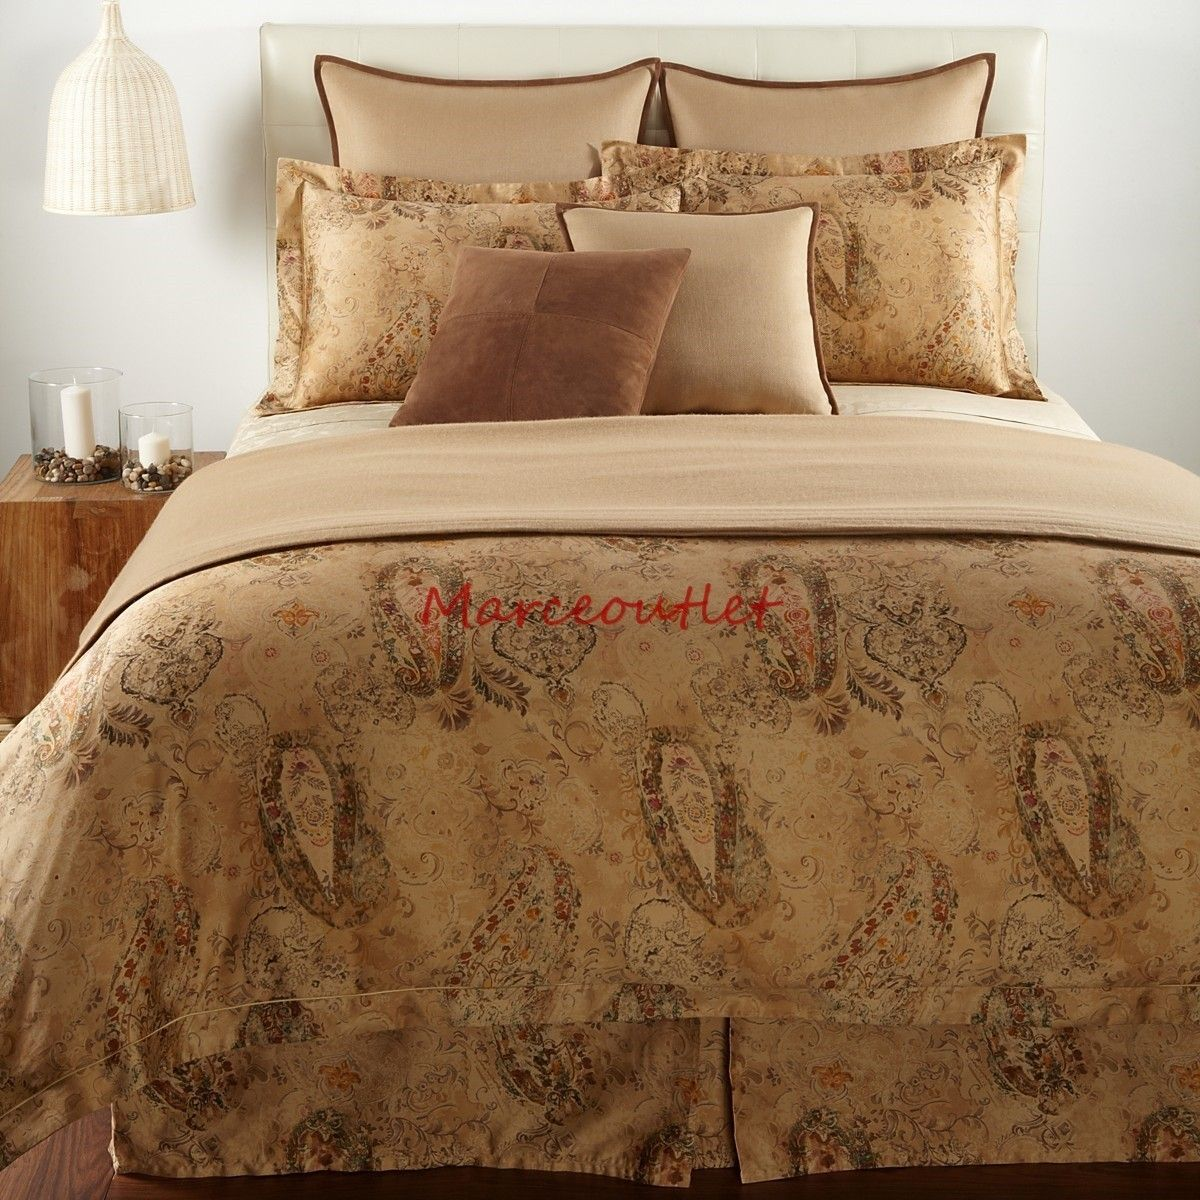 Ralph Lauren Verdonnet Collection Paisley Bedding King